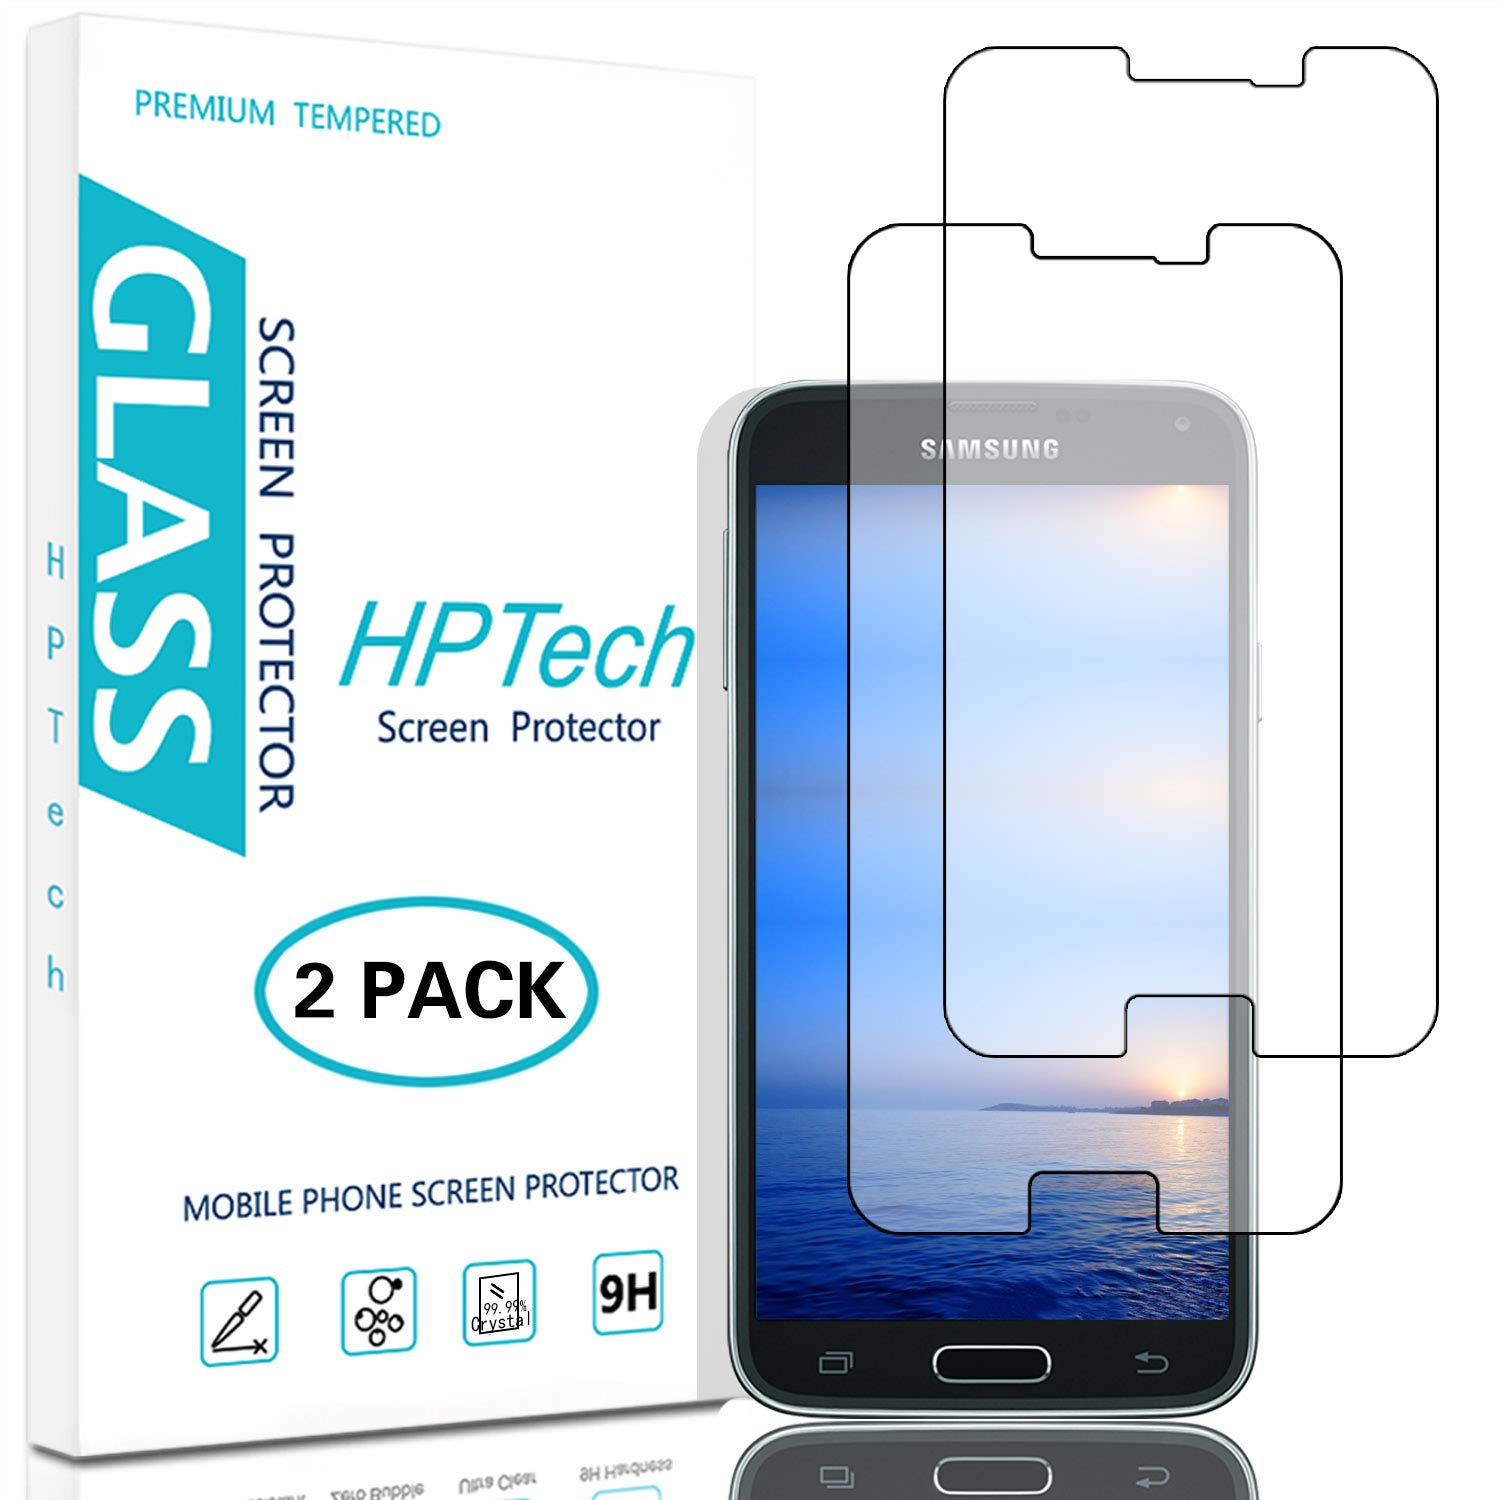 HPTech Galaxy S5 Screen Protector - (2-Pack) for